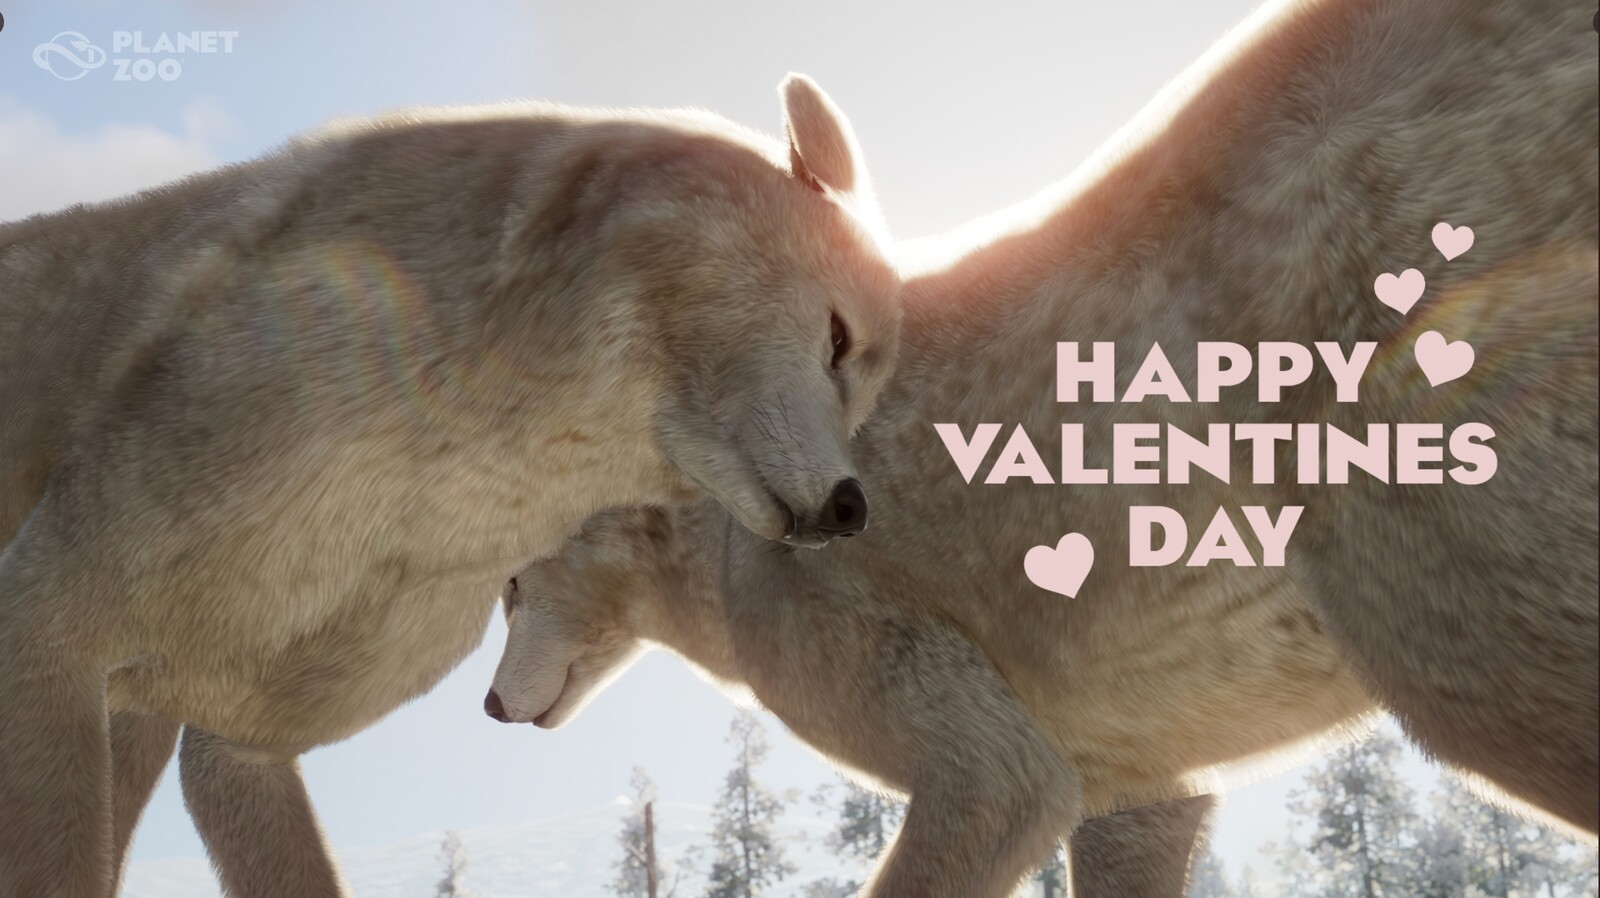 Planet Zoo - Happy Valentines